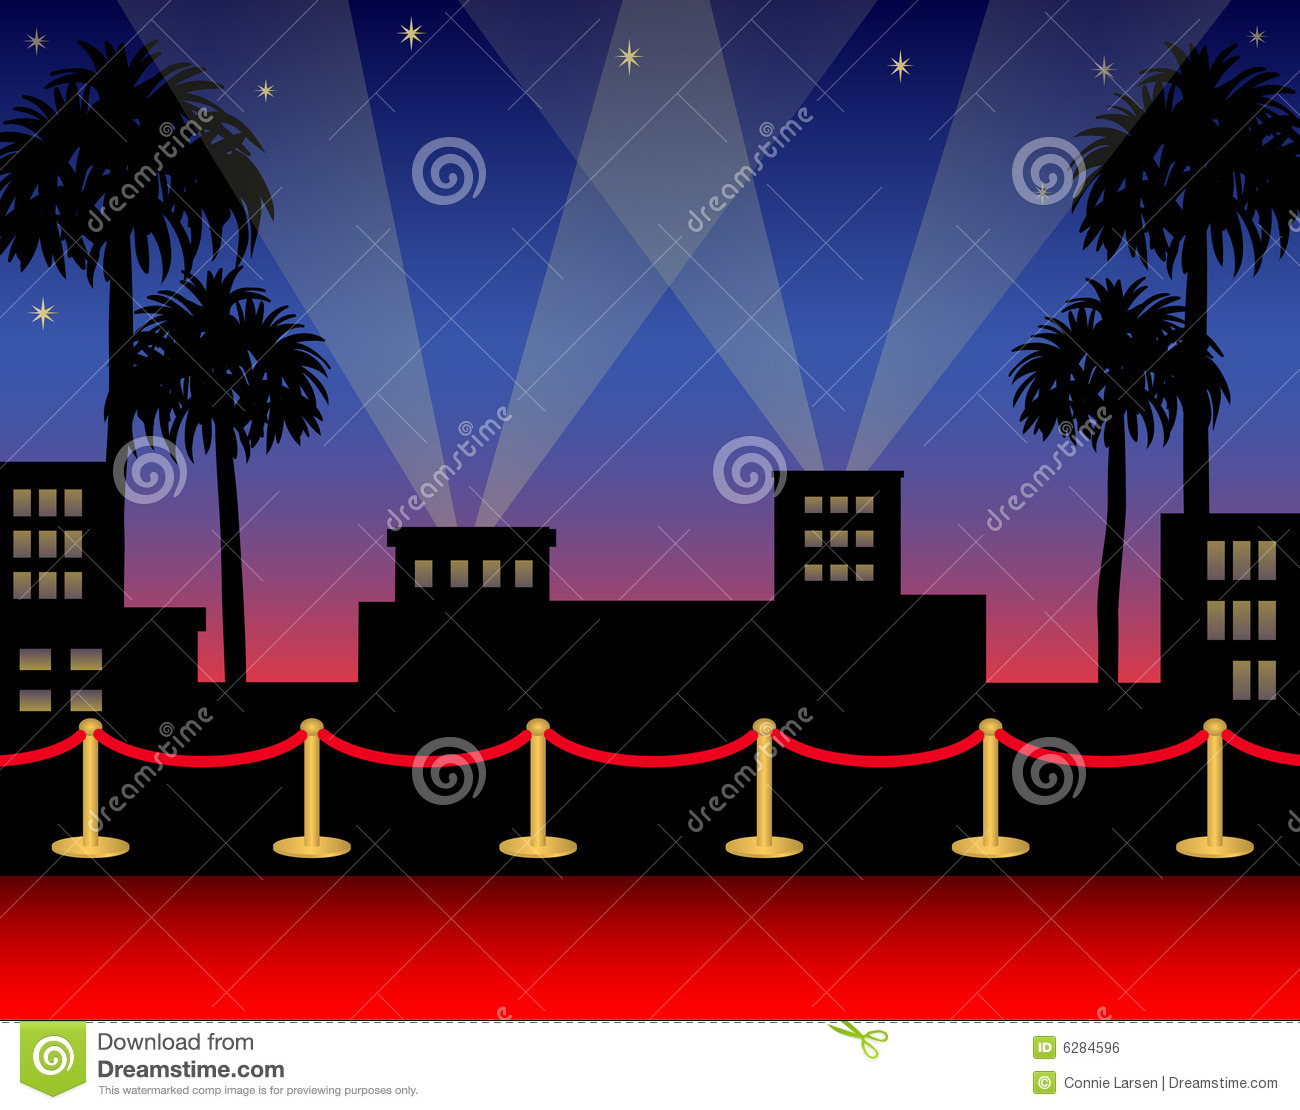 furthermore 2015 05 01 archive besides Elysium Clip No3 165356 moreover Awards And Recognition likewise The Oscars Statue. on oscar academy awards clip art